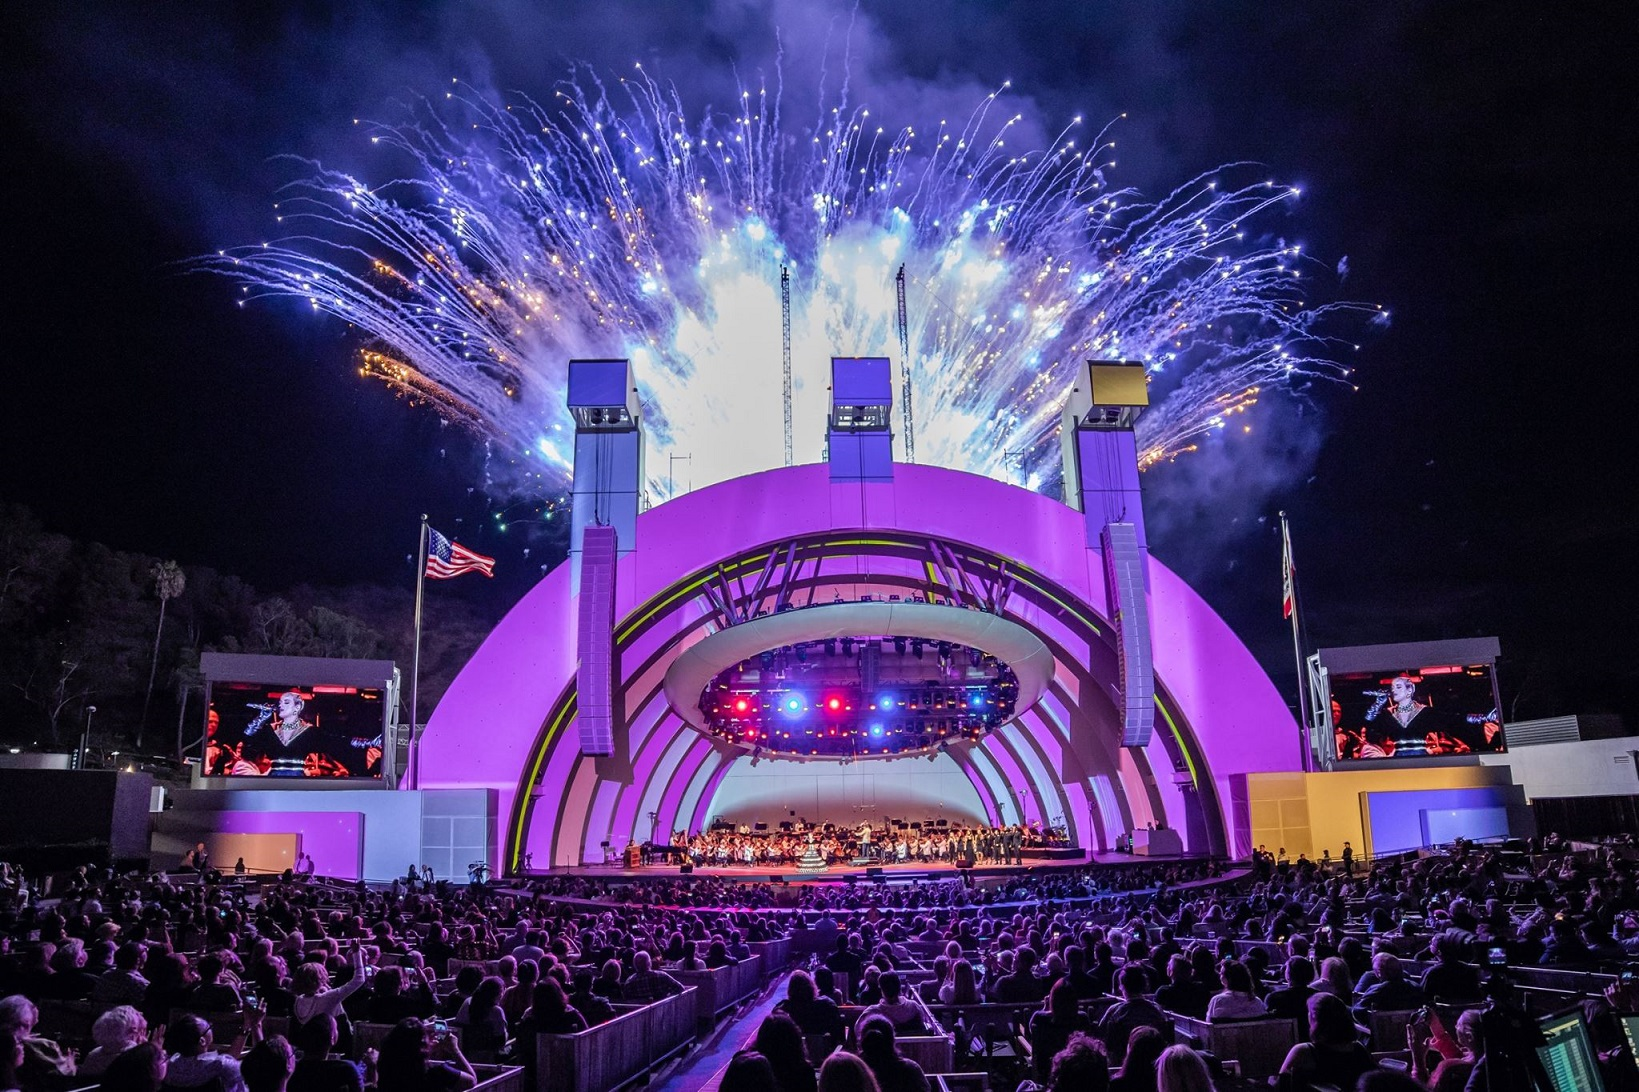 The Hollywood Bowl featured image